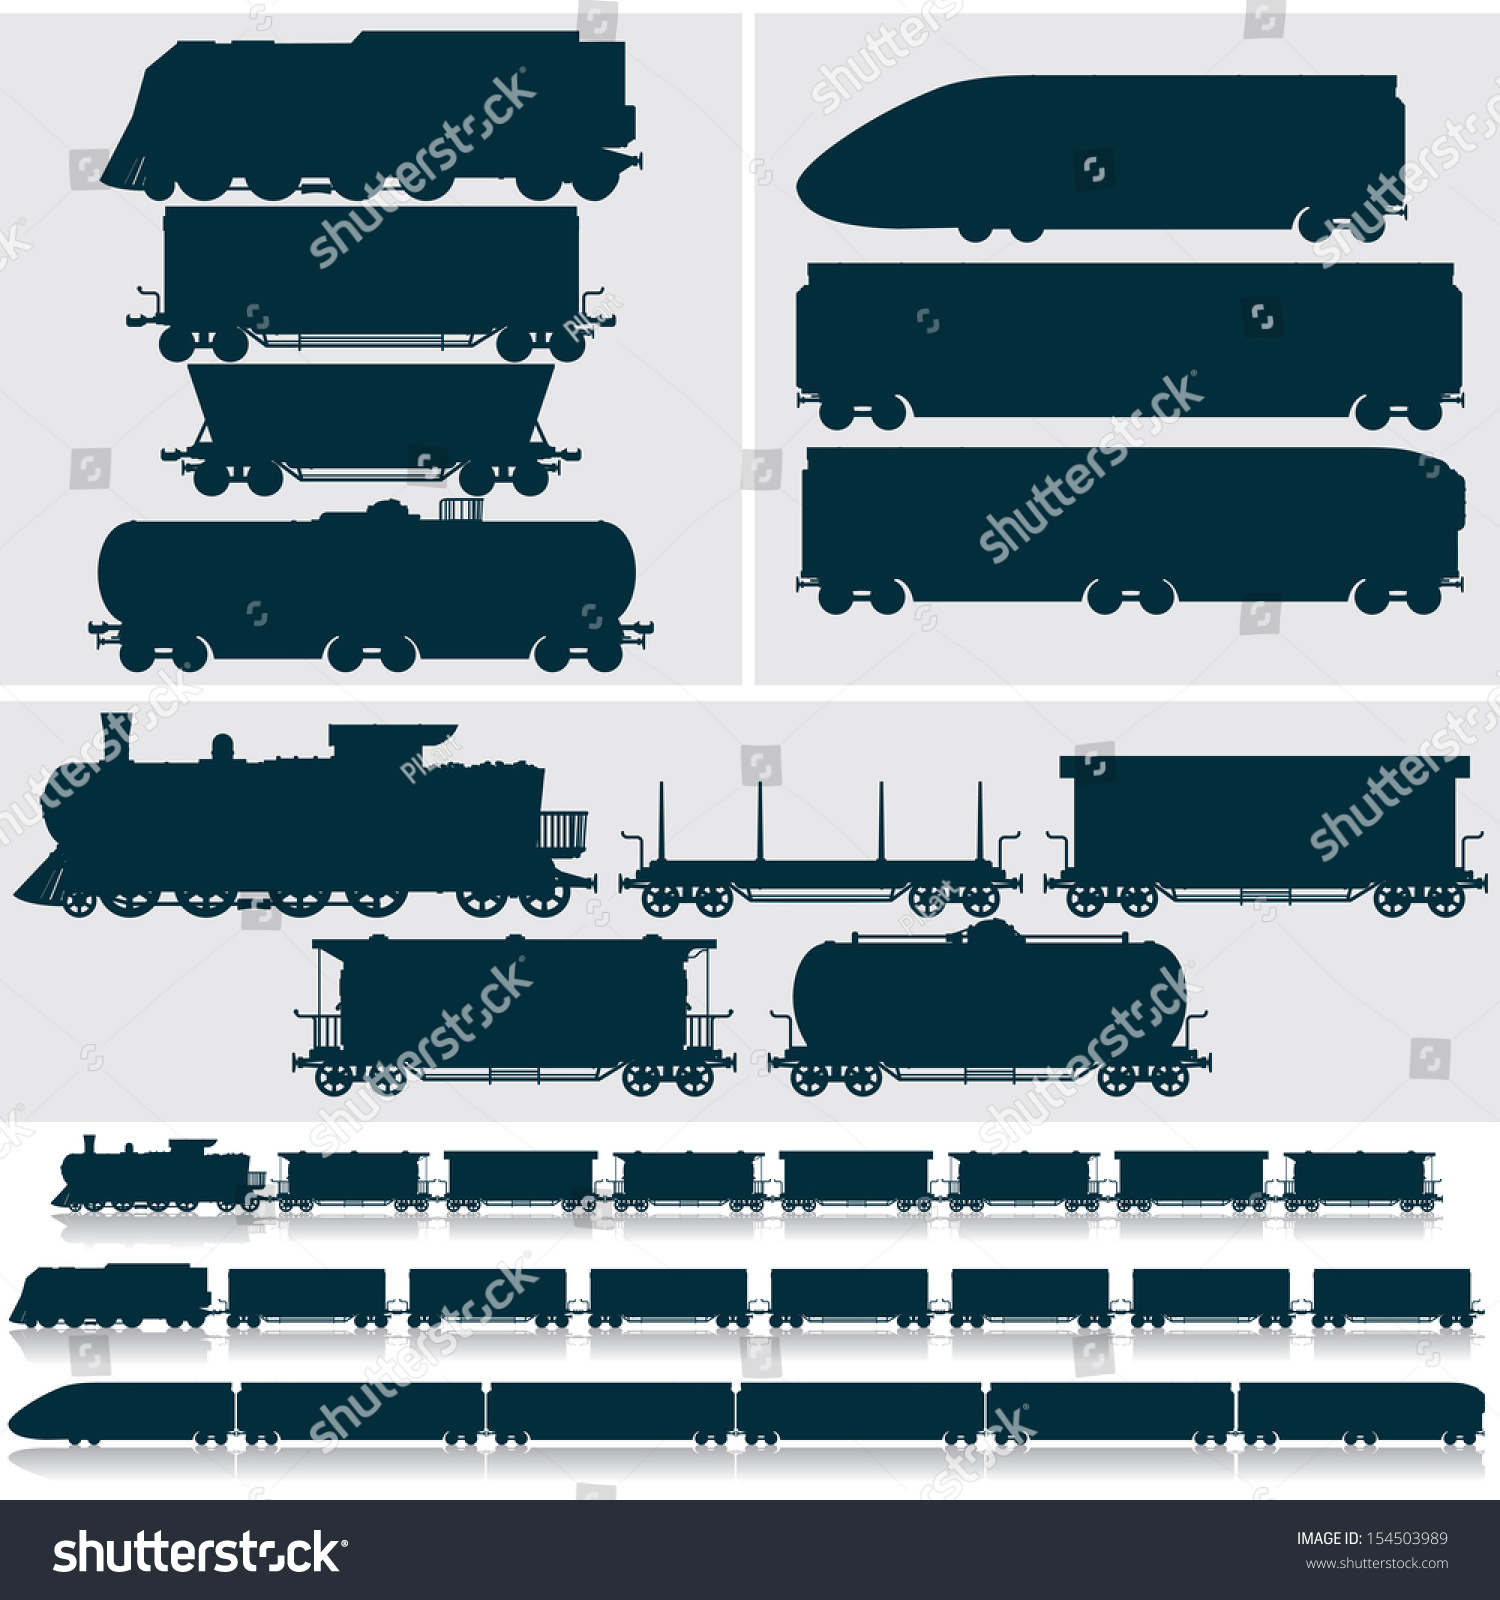 Vector Silhouettes Modern Obsolete Vintage Railroad Stock ...